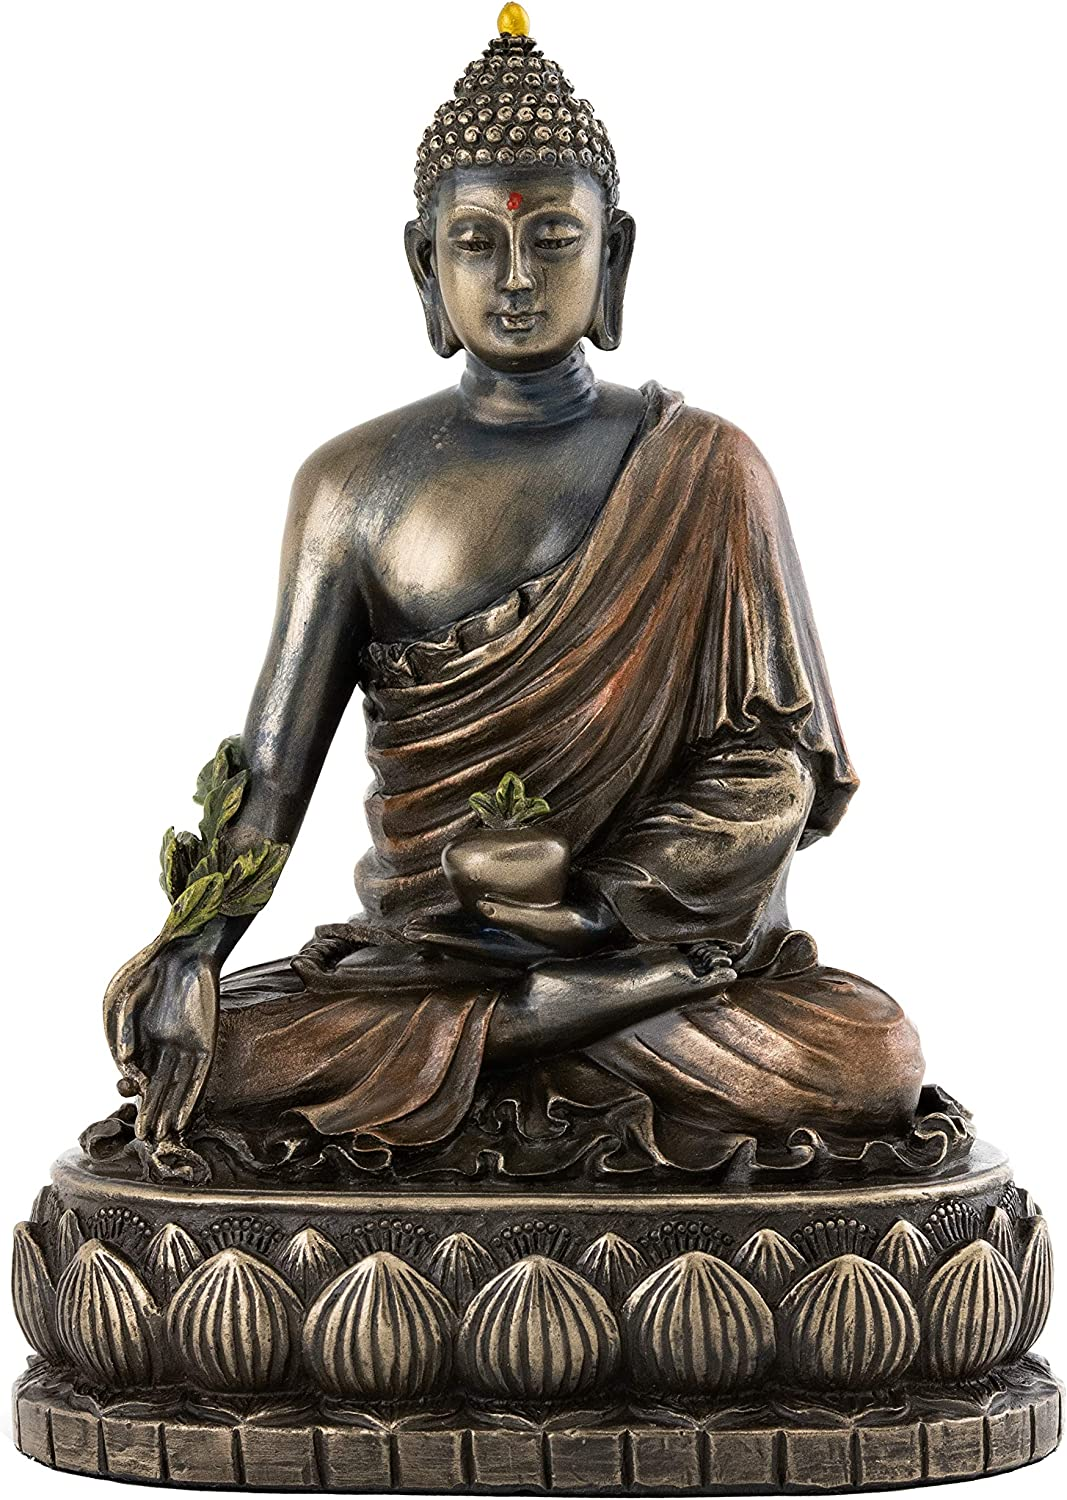 Top Collection Medicine Buddha Statue - Buddha of Healing Sculpture in Premium Cold Cast Bronze- 5.5-Inch Collectible Figurine